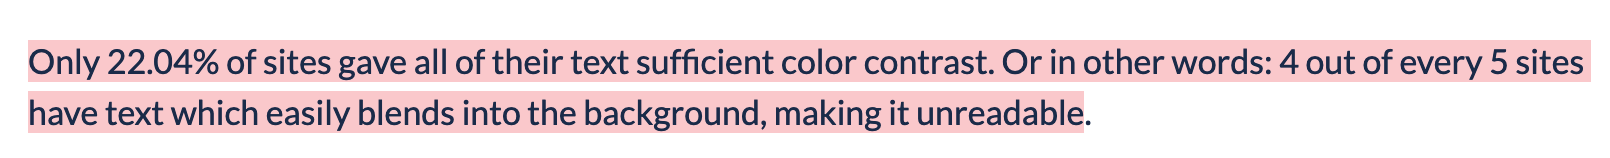 Paragraph of the article: Only 22.04% of sites gave all of their text sufficient color contrast. Or in other words: 4 out of every 5 sites have text which easily blends into the background, making it unreadable